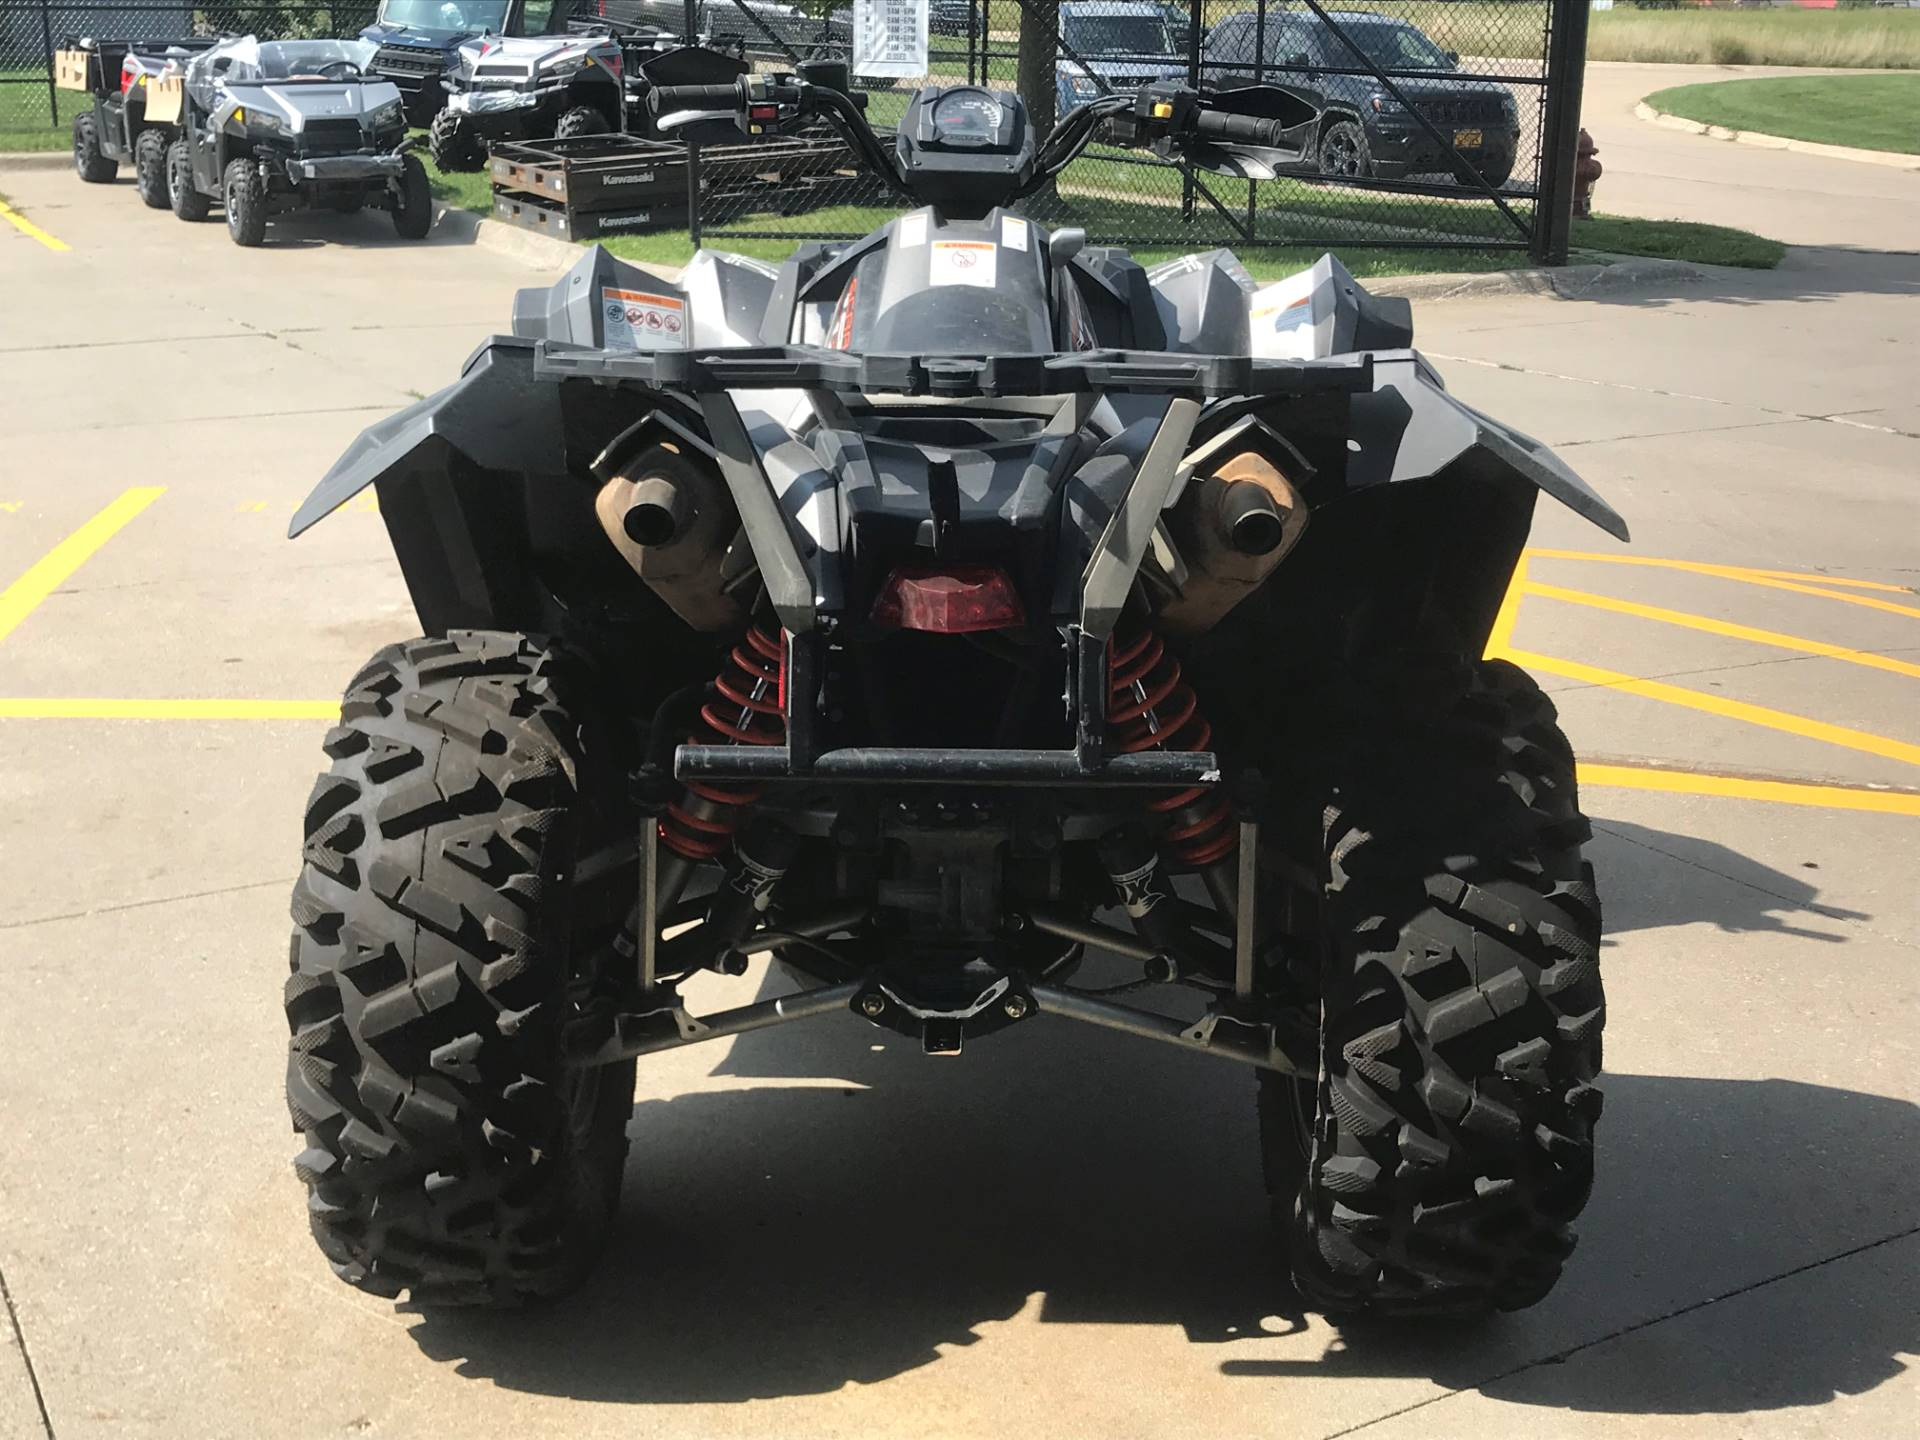 2017 Polaris Scrambler XP 1000 in Iowa City, Iowa - Photo 2